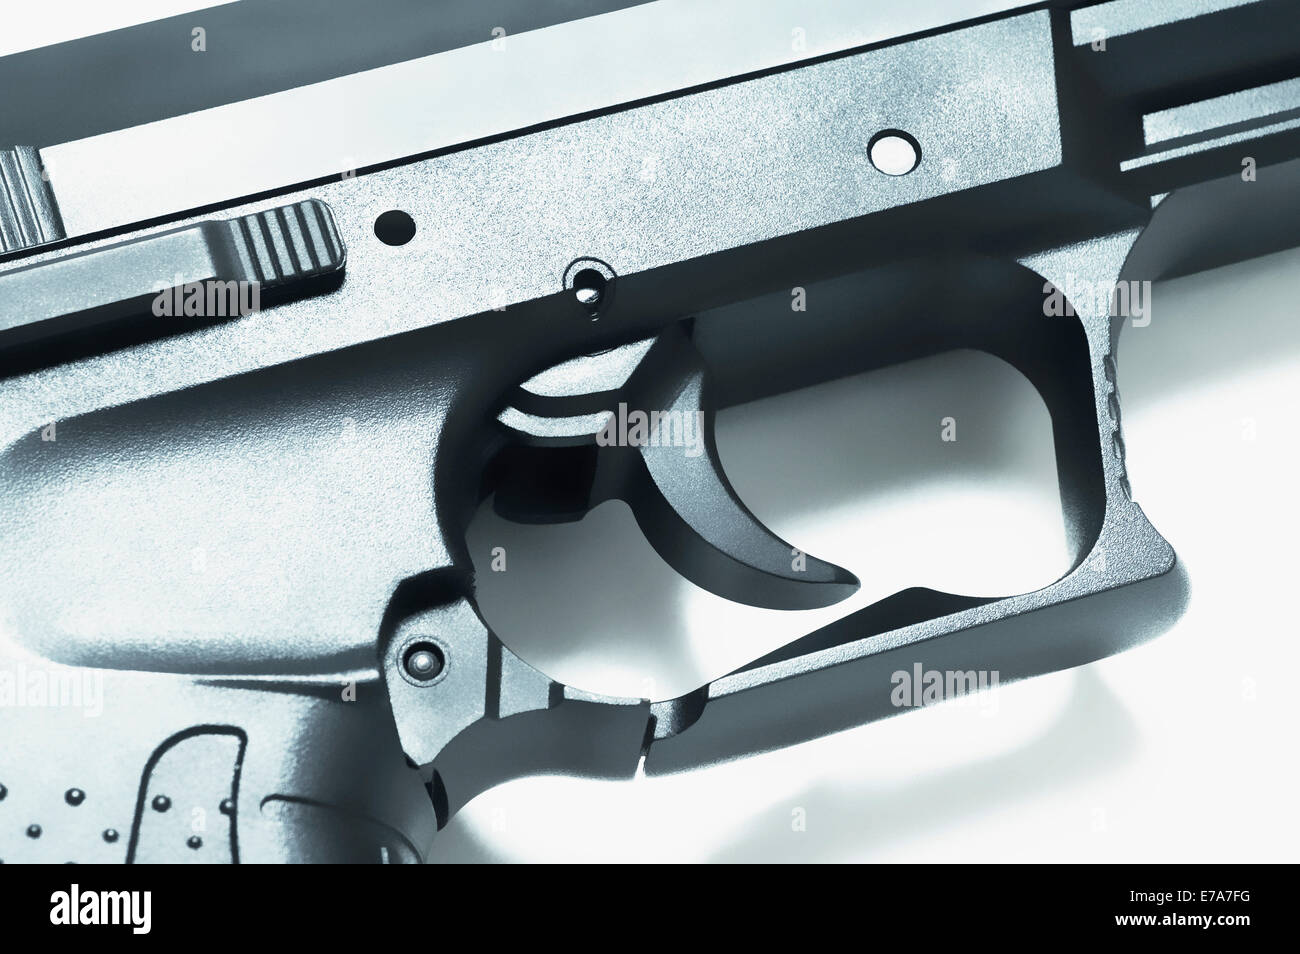 Close-up of the trigger on a handgun - Stock Image